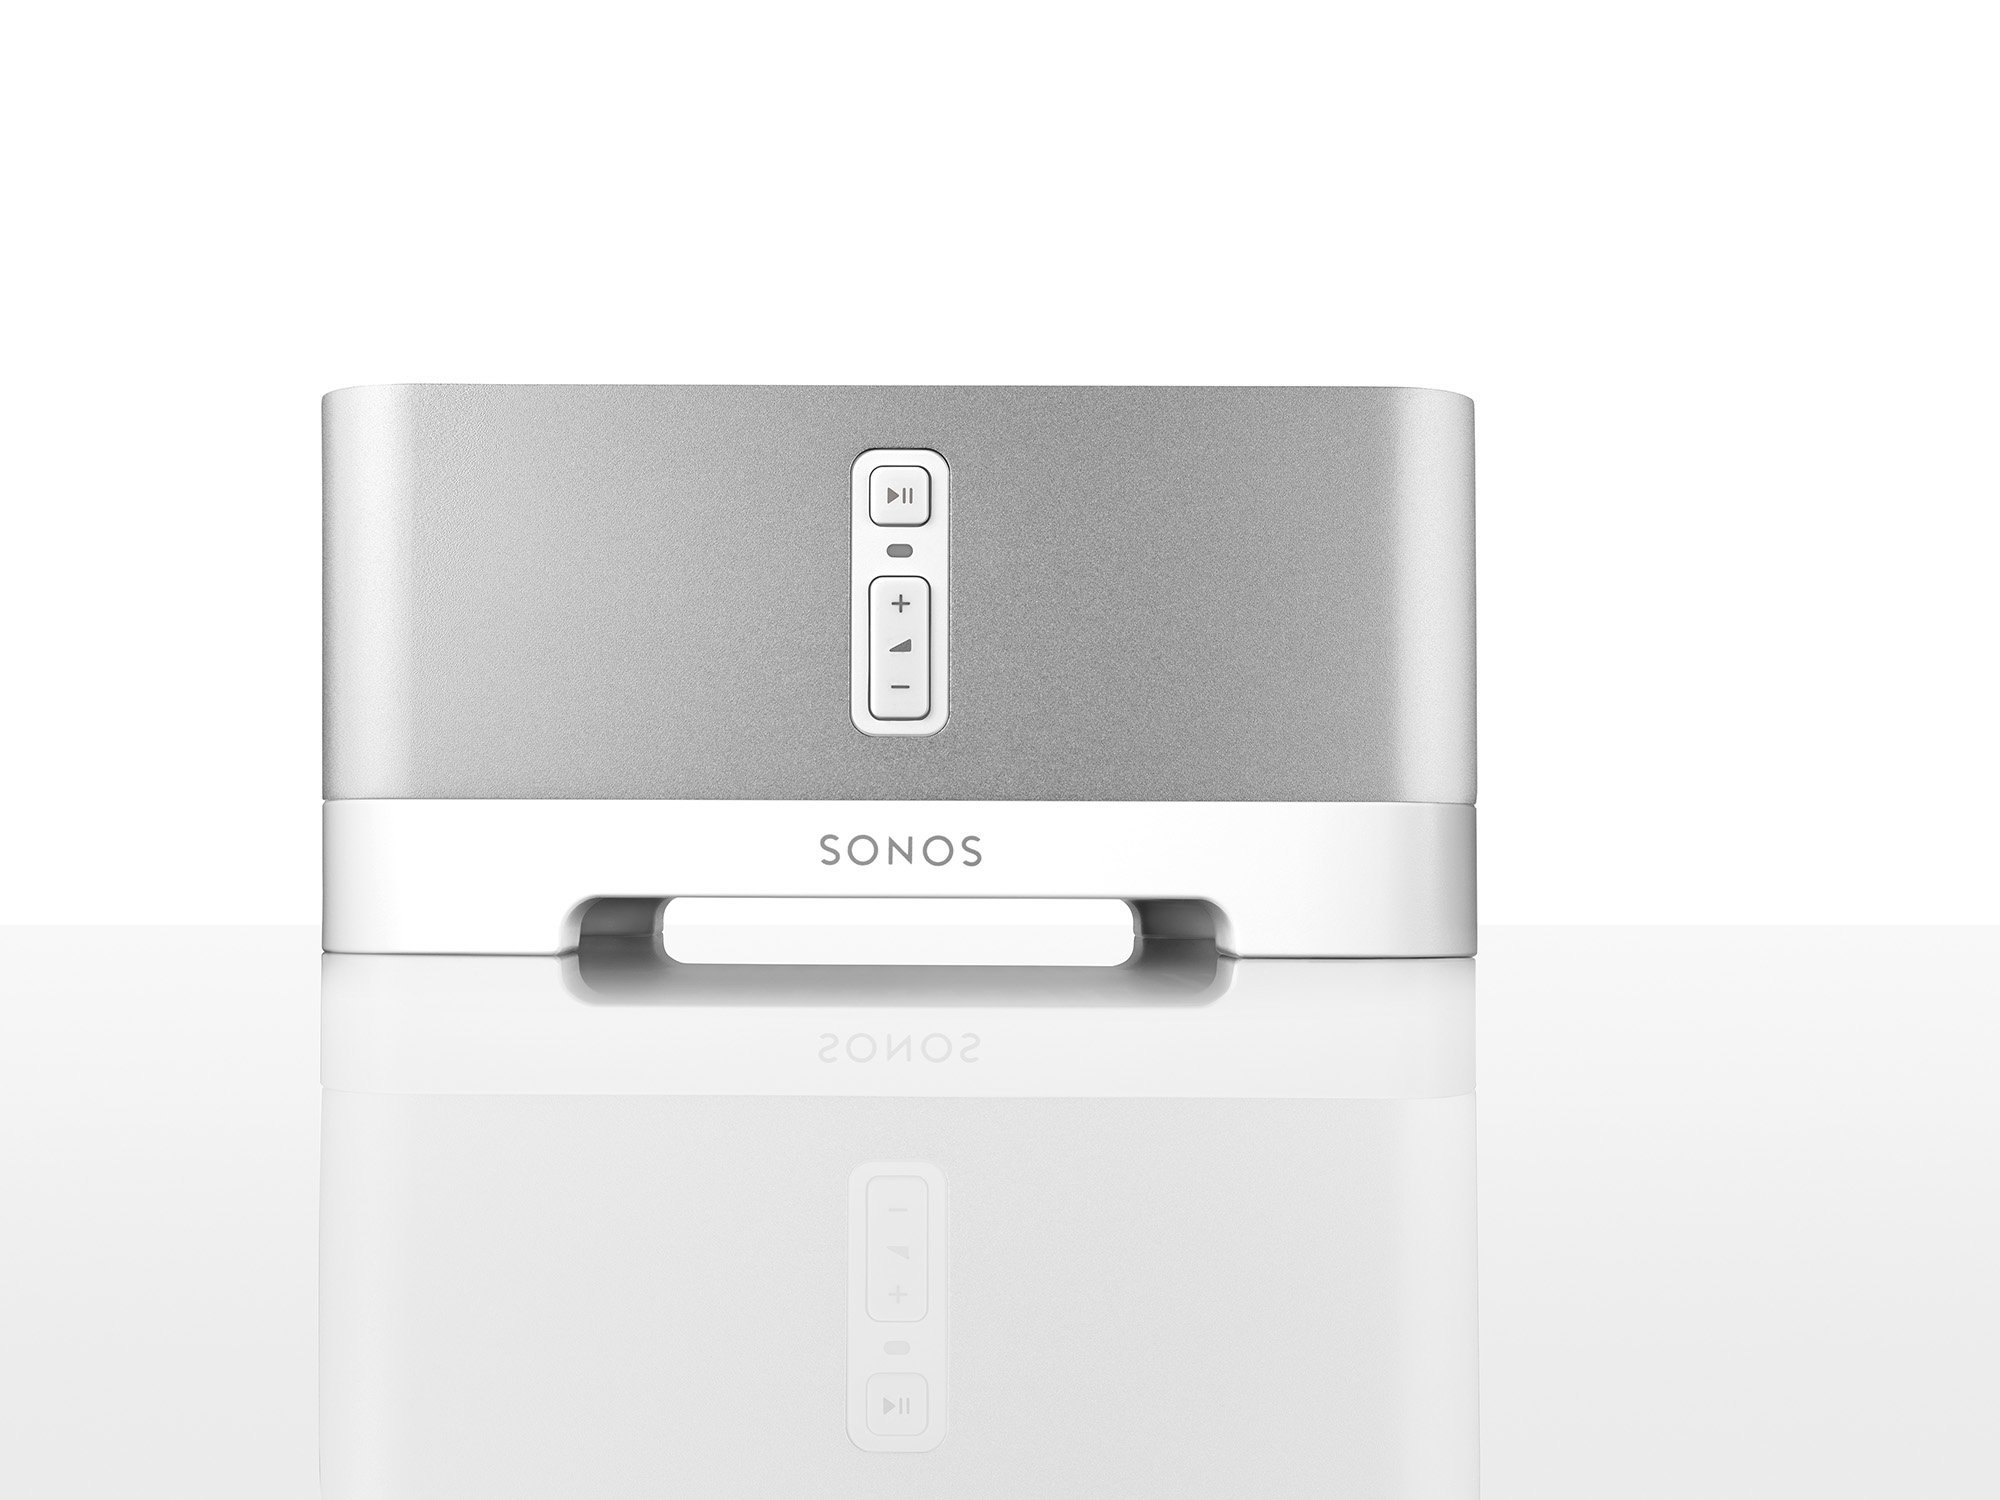 CEO of Sonos, a speaker manufacturer, says company will continue to support older products, despite previous statements